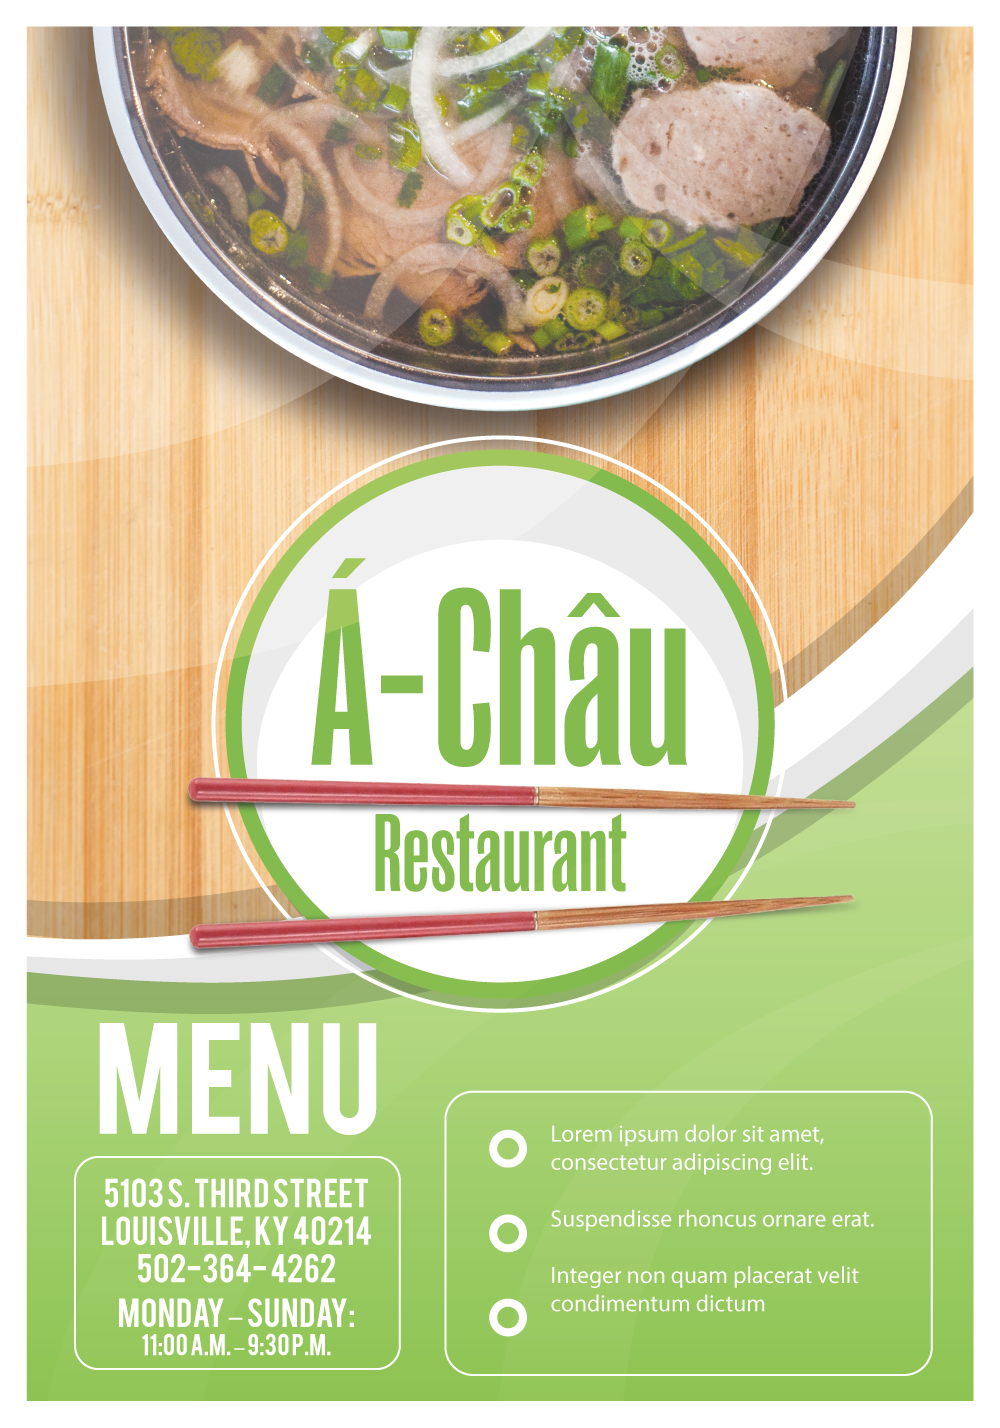 A Chau Menu Green